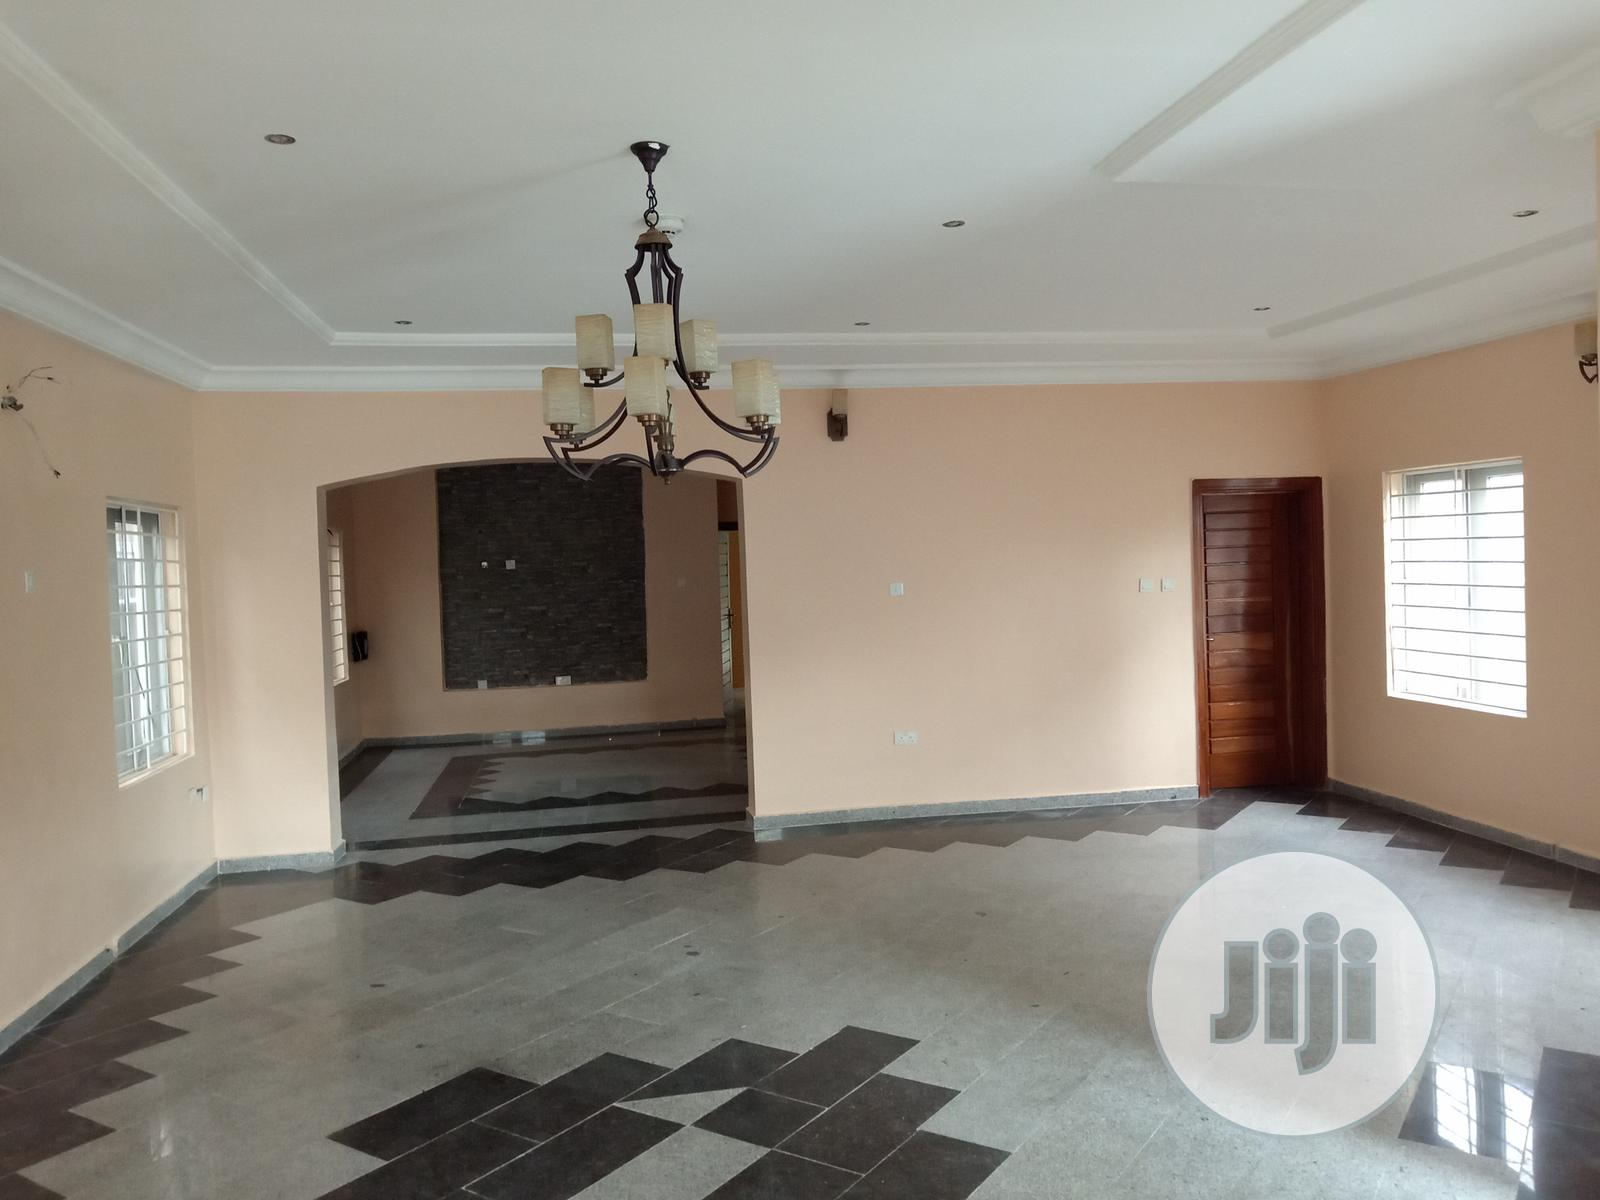 5bedrooms Semi Detached Duplex To Let At Lekki Phase 1 | Houses & Apartments For Rent for sale in Lekki Phase 1, Lekki, Nigeria